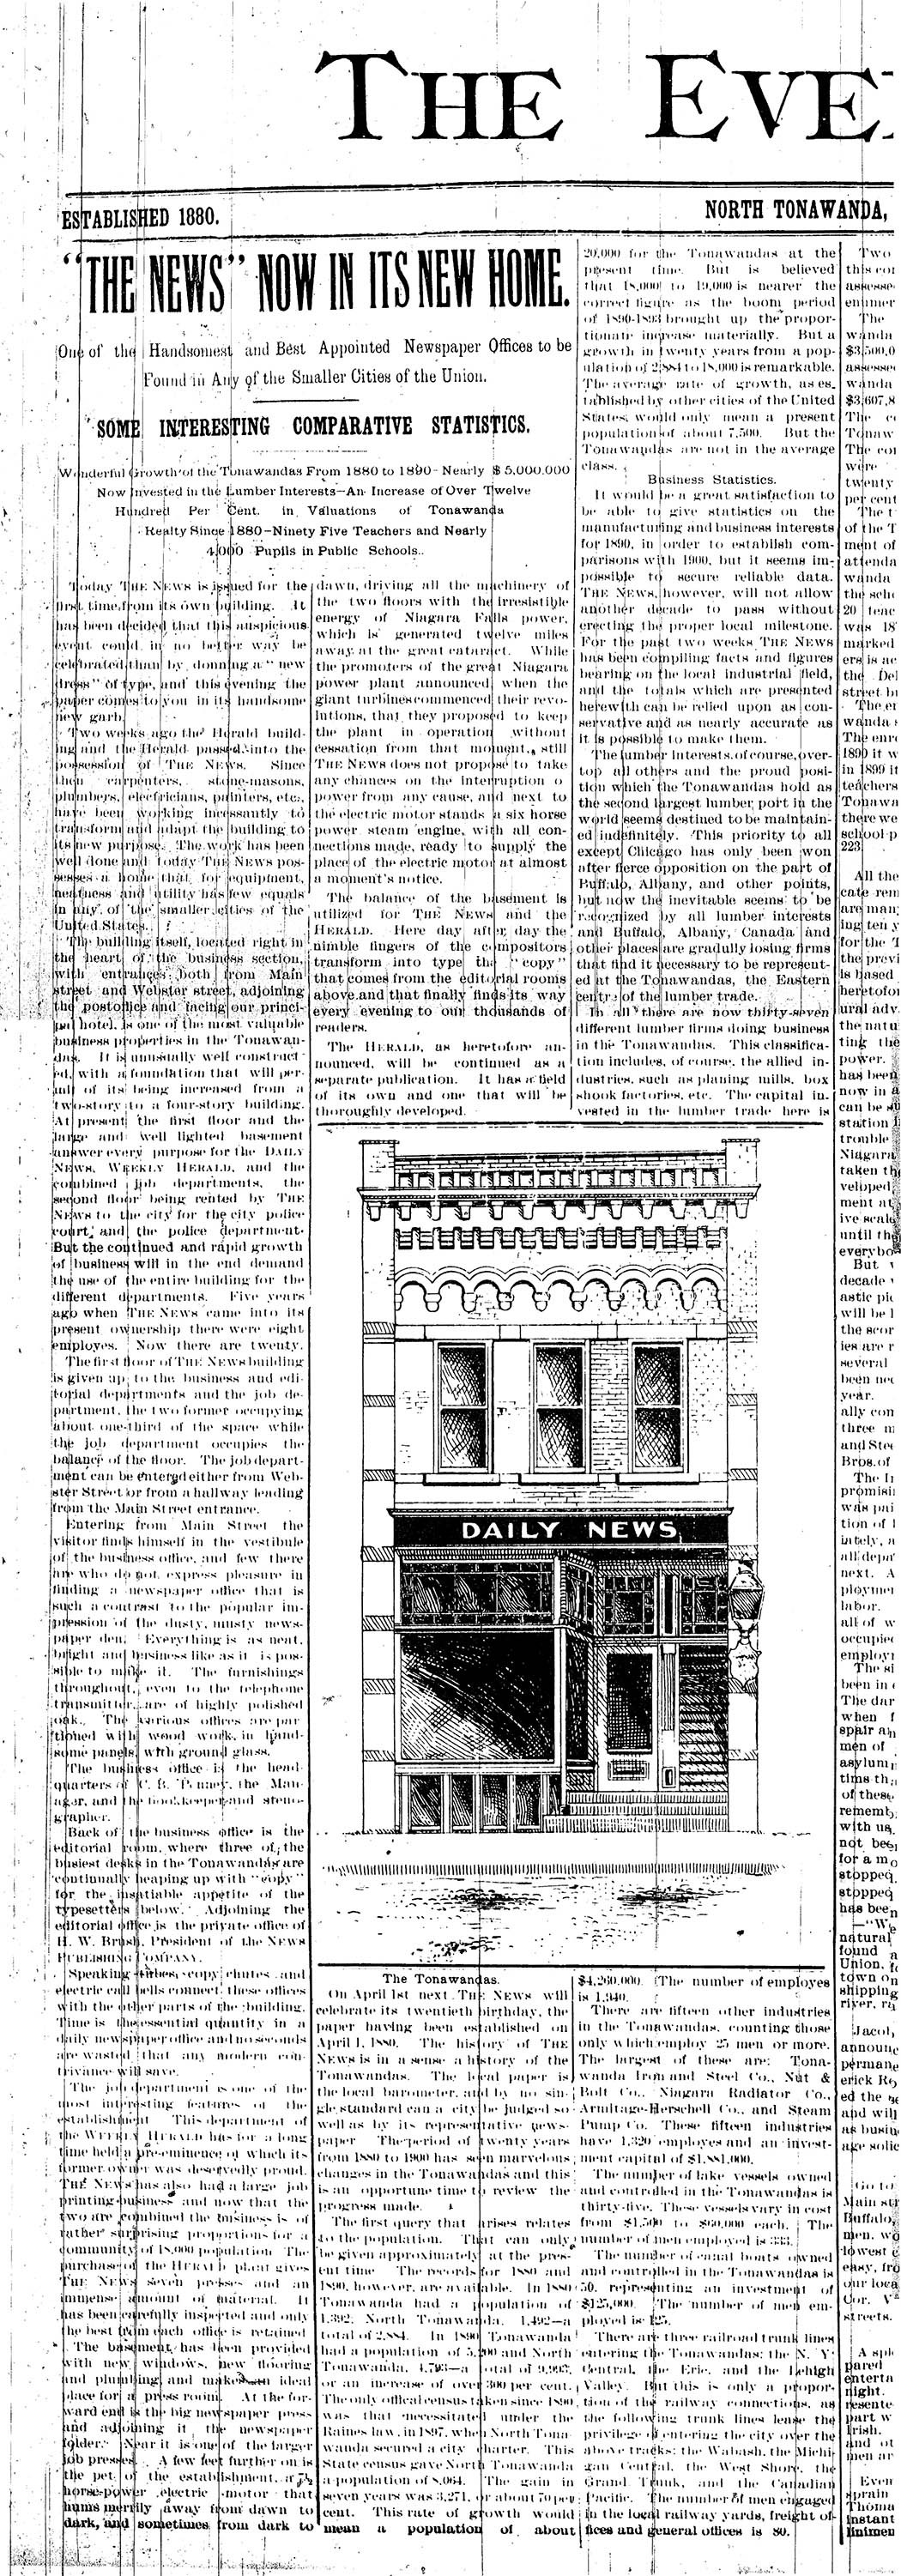 Tonawanda News Moves into Webster Building, article (Tonawanda News, 1900-03-12).jpg